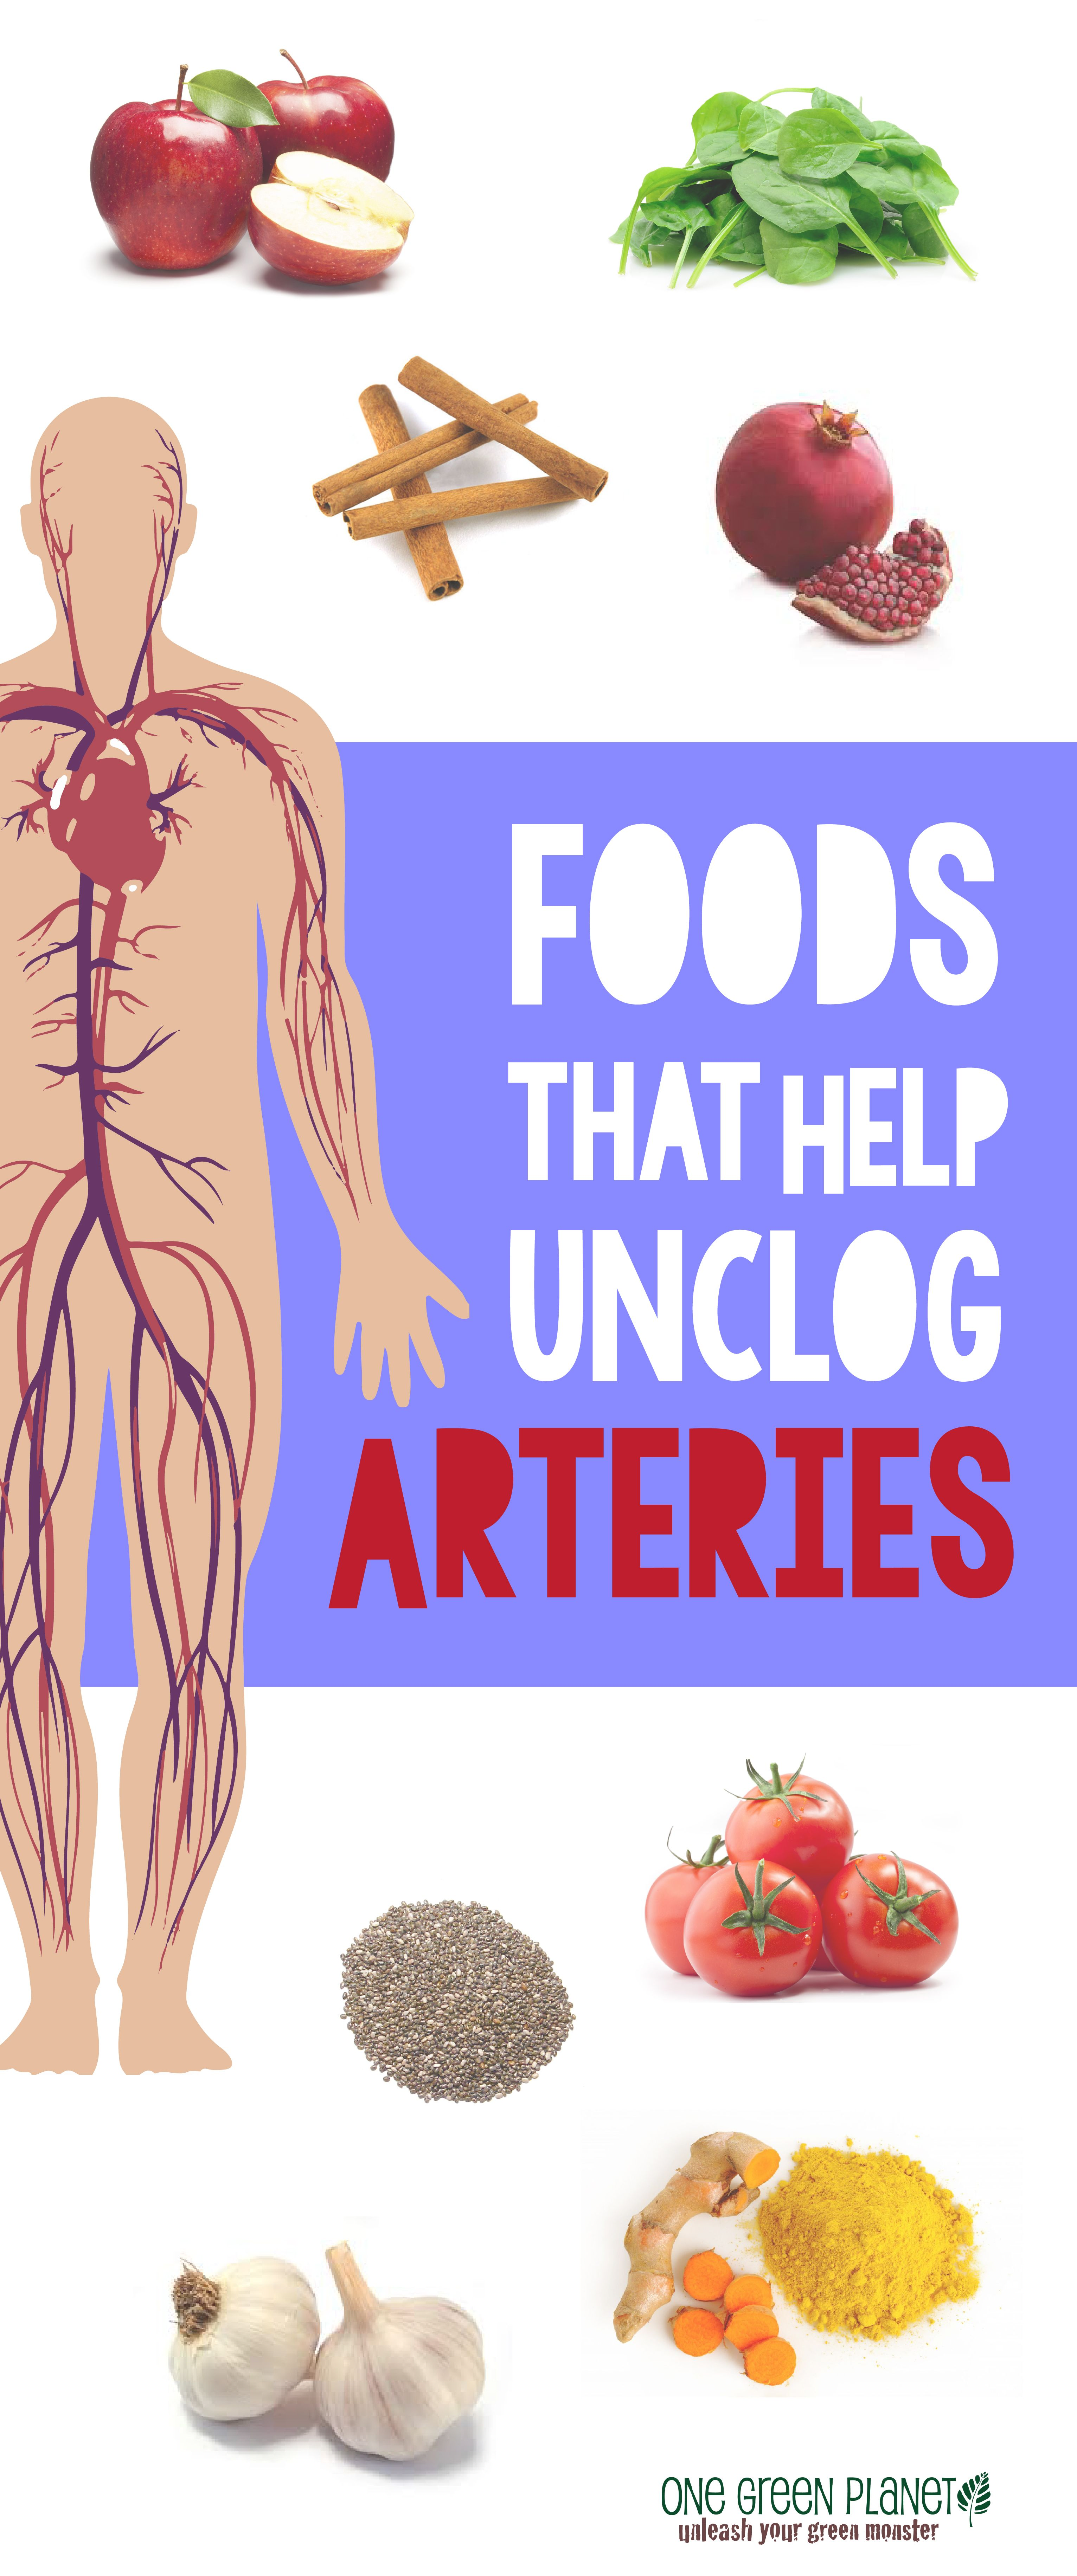 8 Plant Based Foods That Could Help Unclog Your Arteries Heart Healthy Diet Health And Nutrition Health